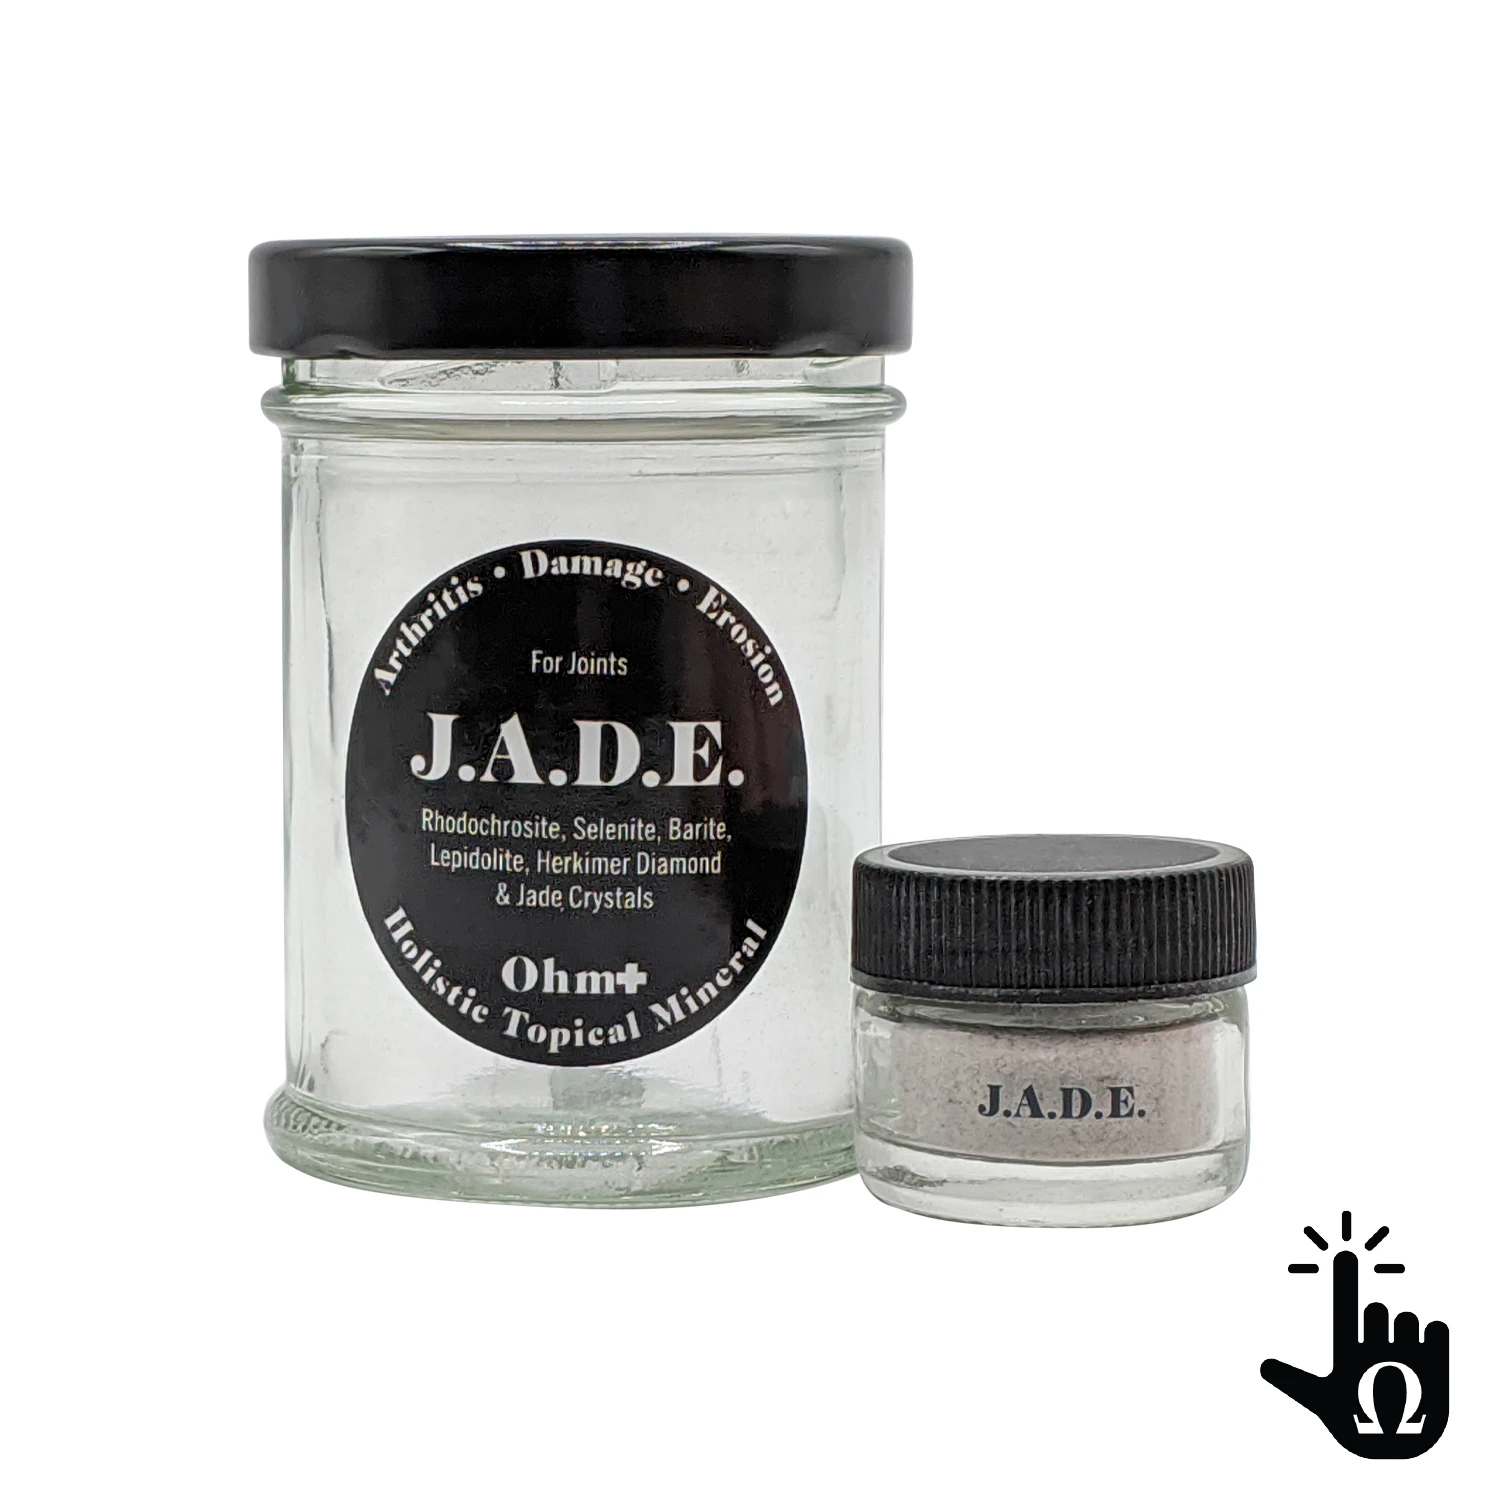 J.A.D.E Topical Mineral